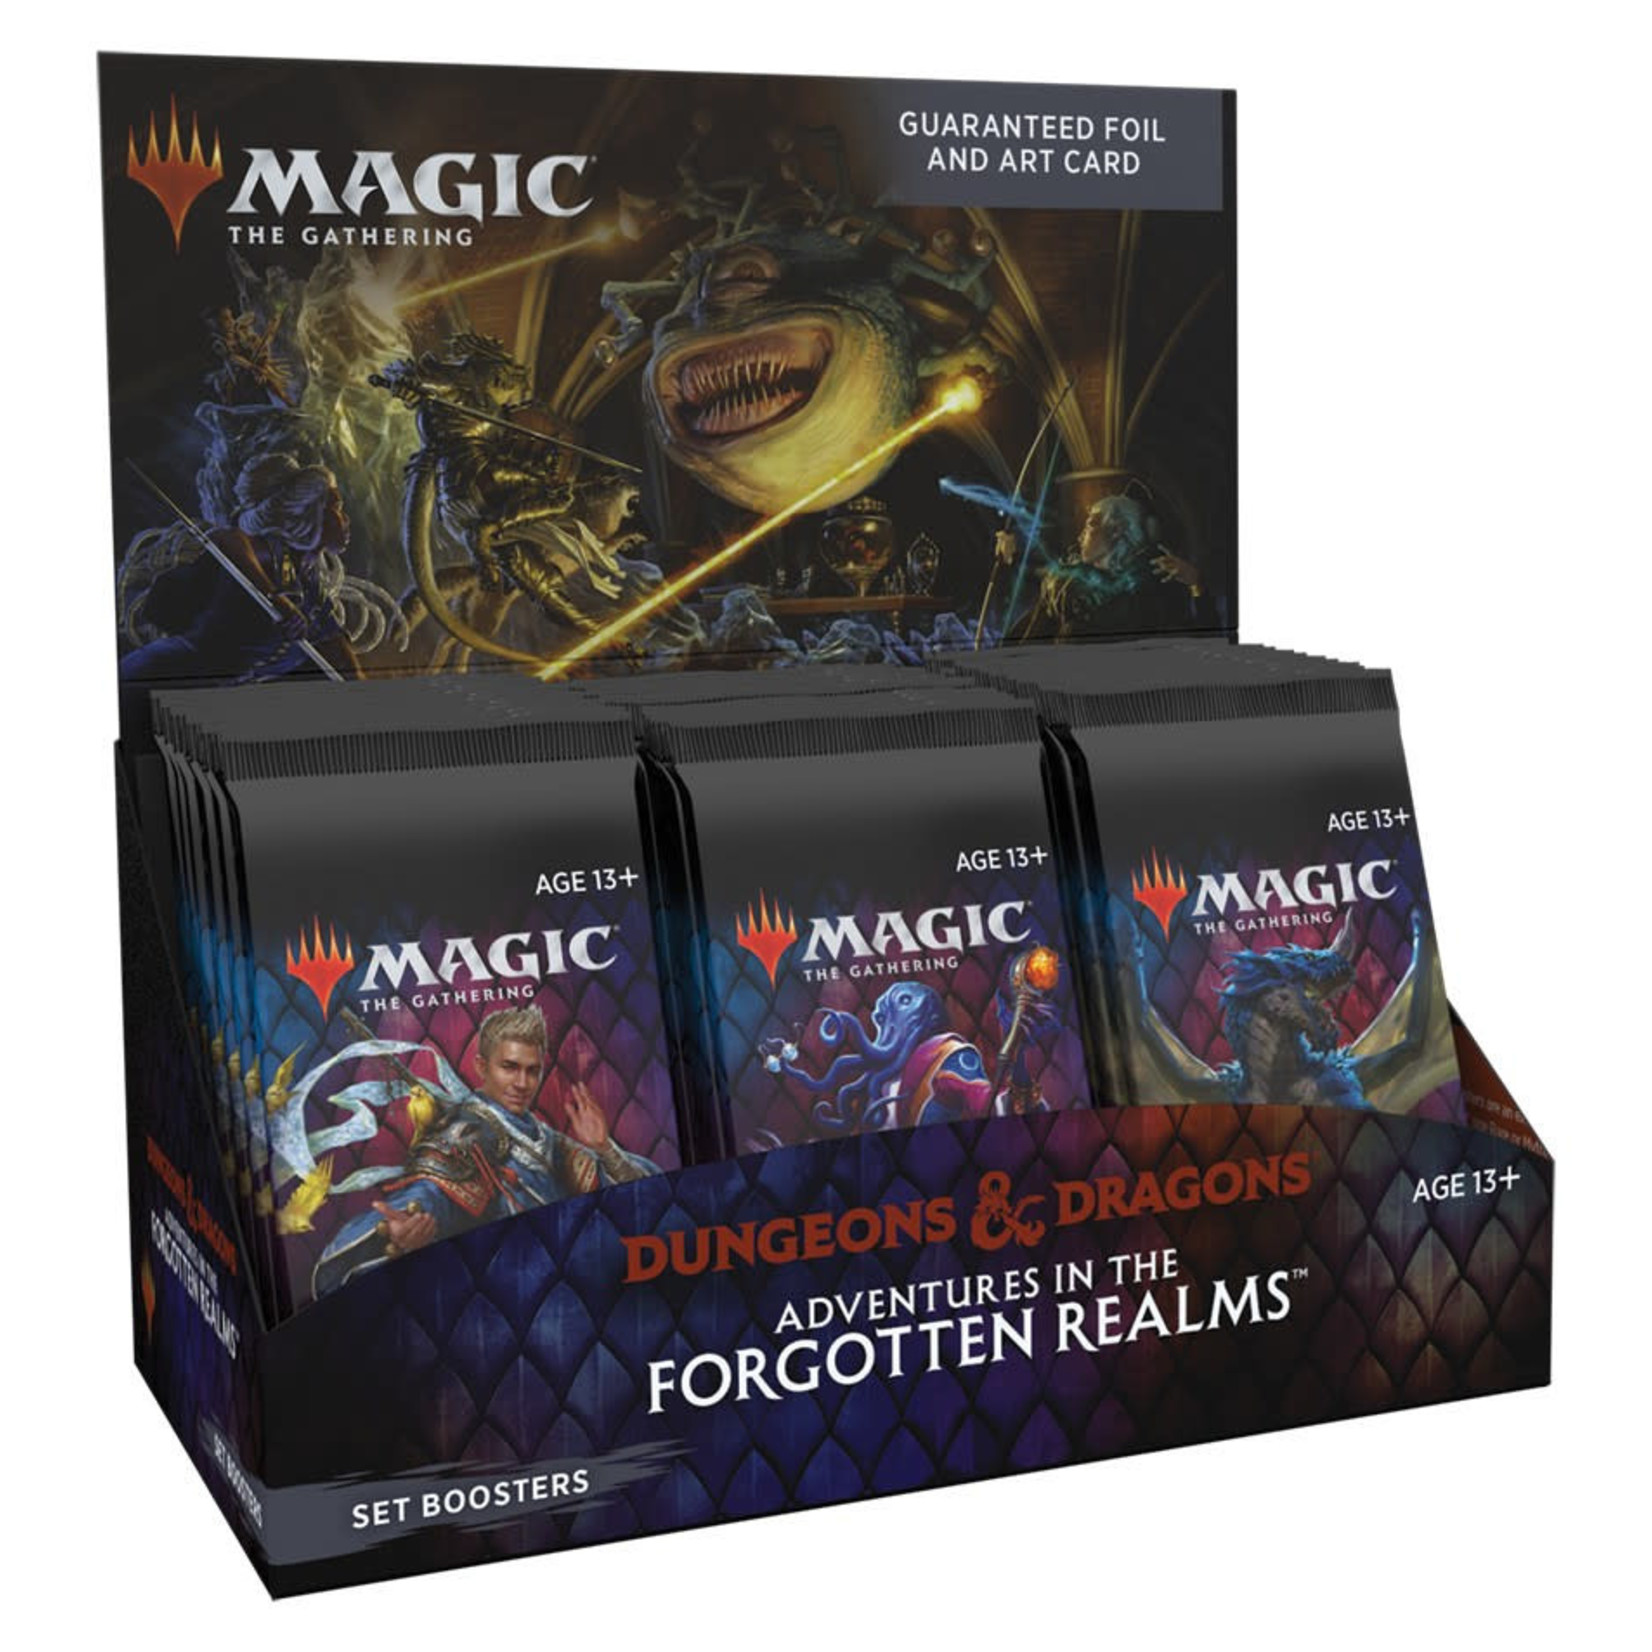 Wizards of the Coast D&D Adventures in the Forgotten Realms Set Booster Box